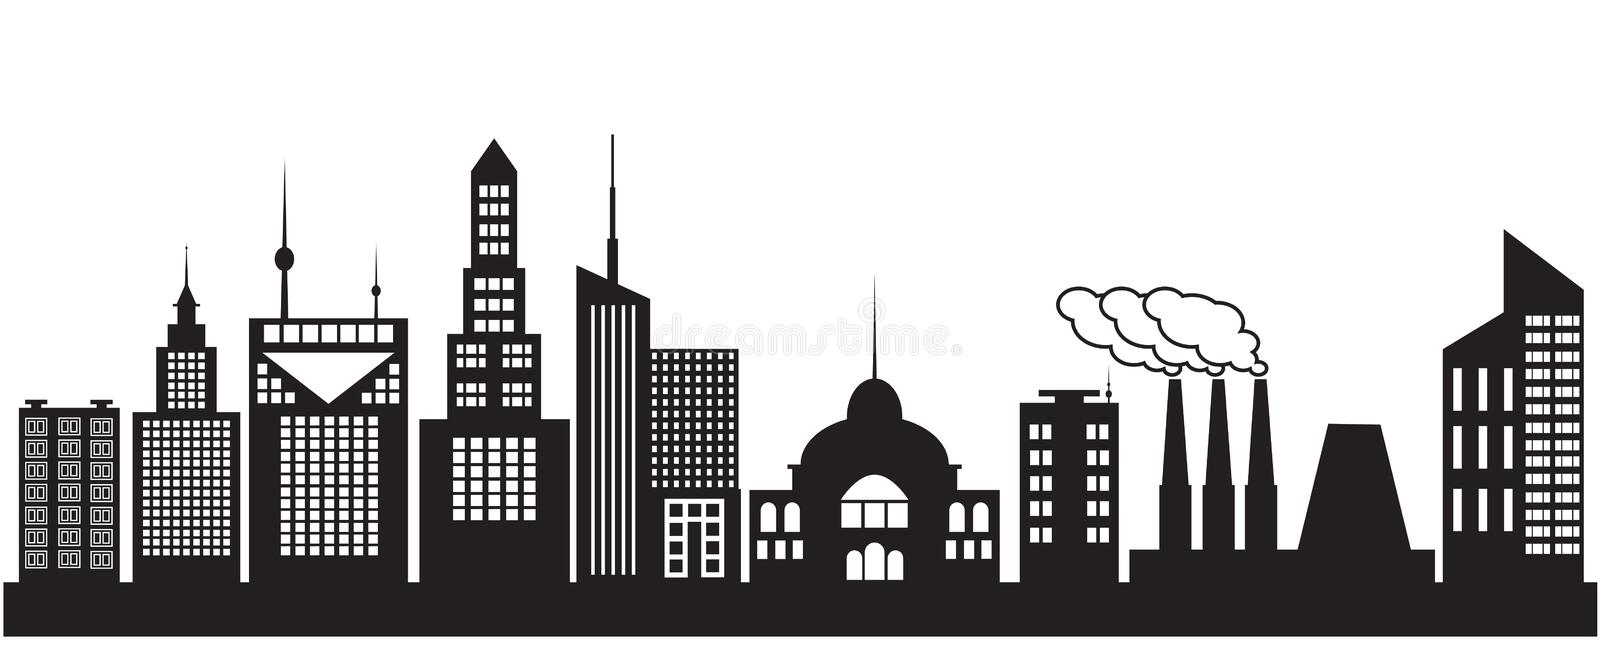 Nine silhouettes of city buildings vector illustration